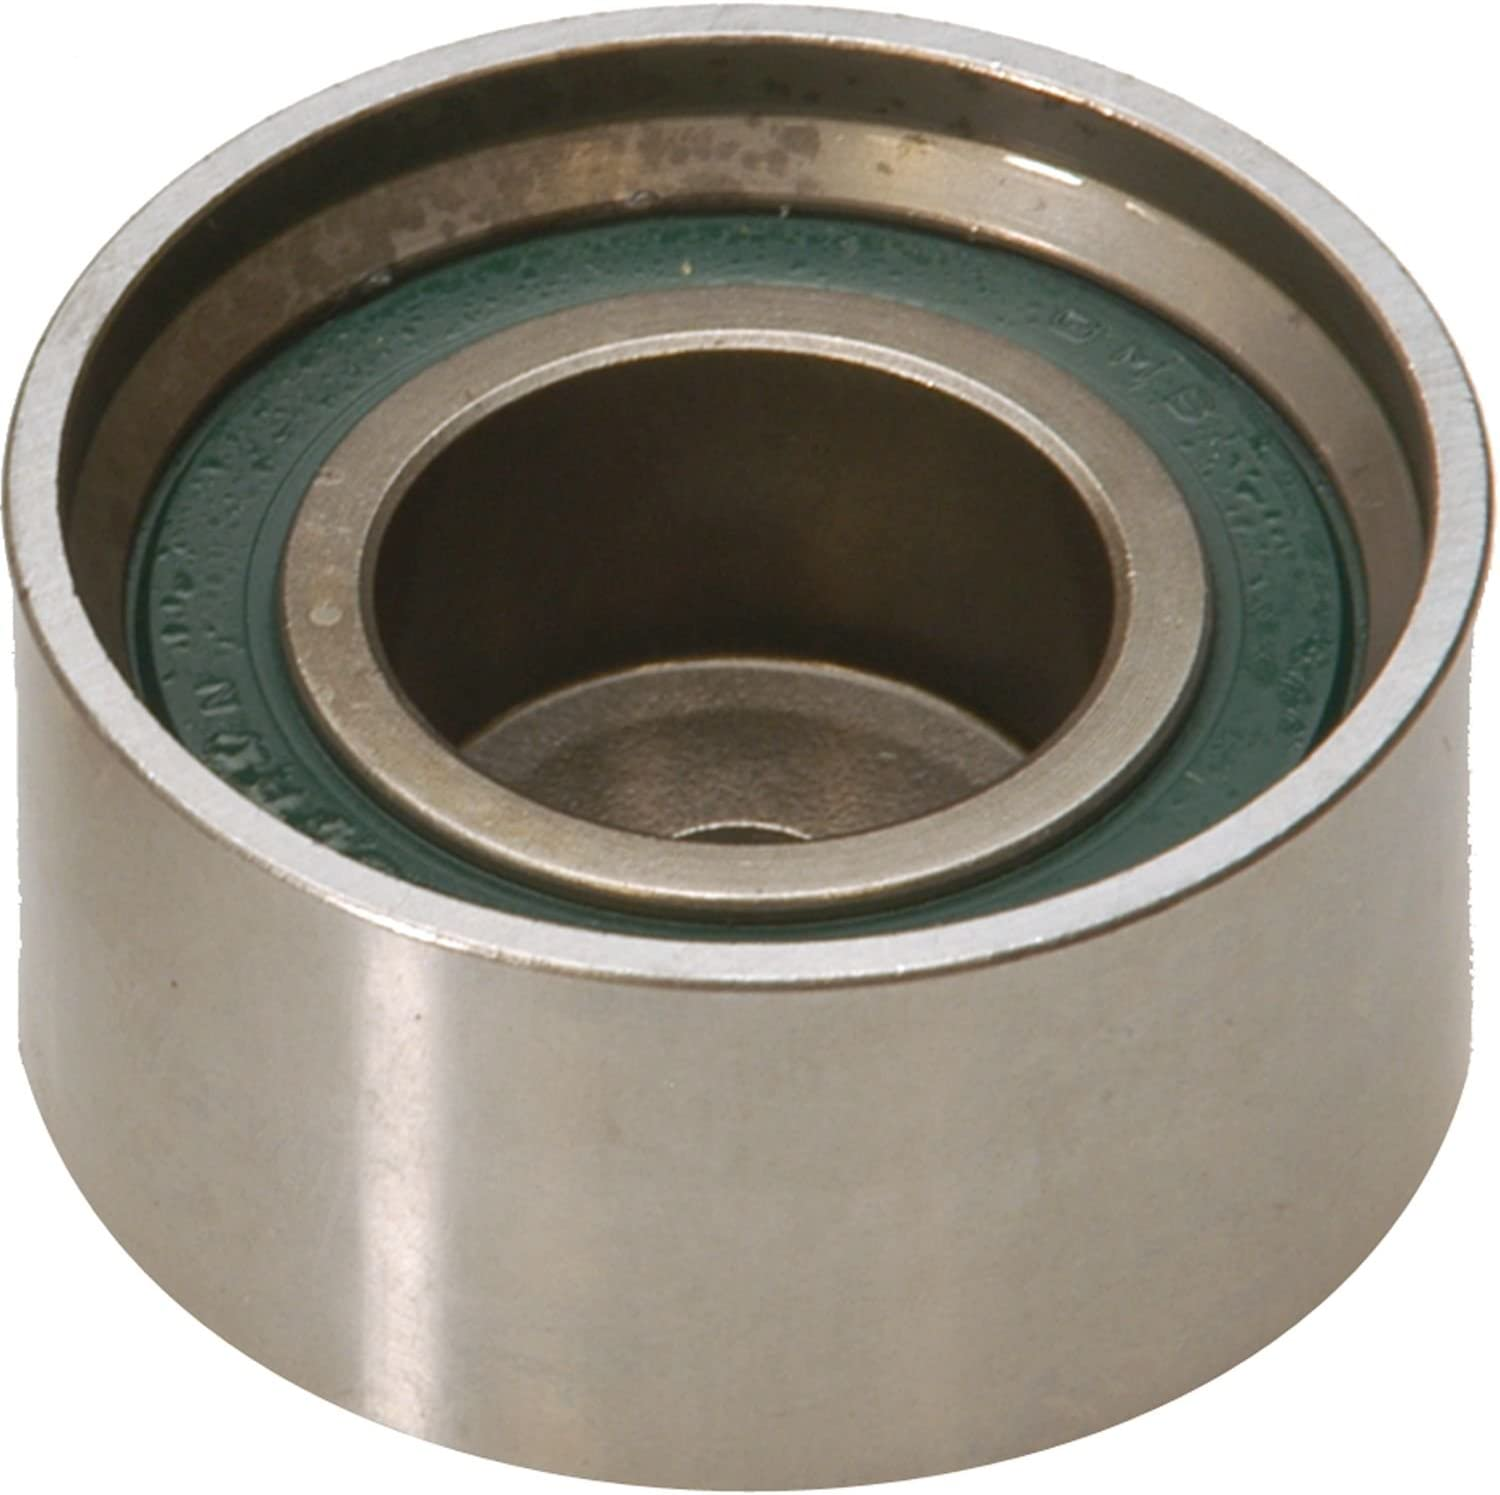 ACDelco 38382 Professional Automatic Belt Tensioner and Pulley Assembly